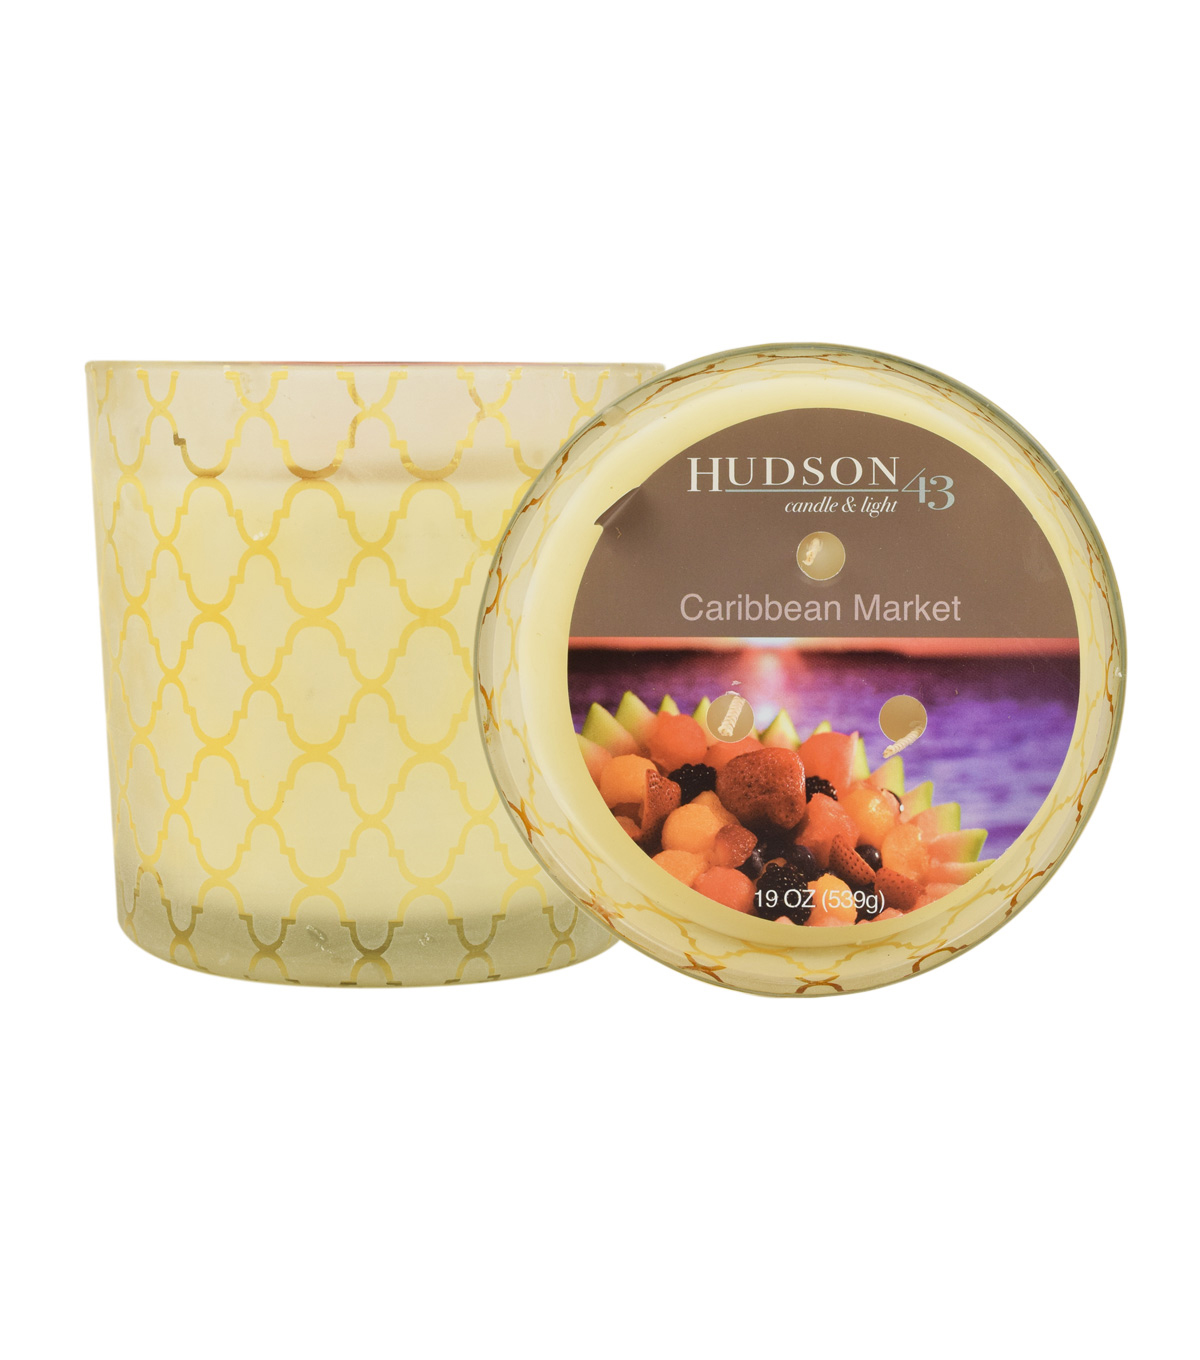 Hudson 43™ Candle & Light Collection 19oz Patterned Glass Caribbean Market